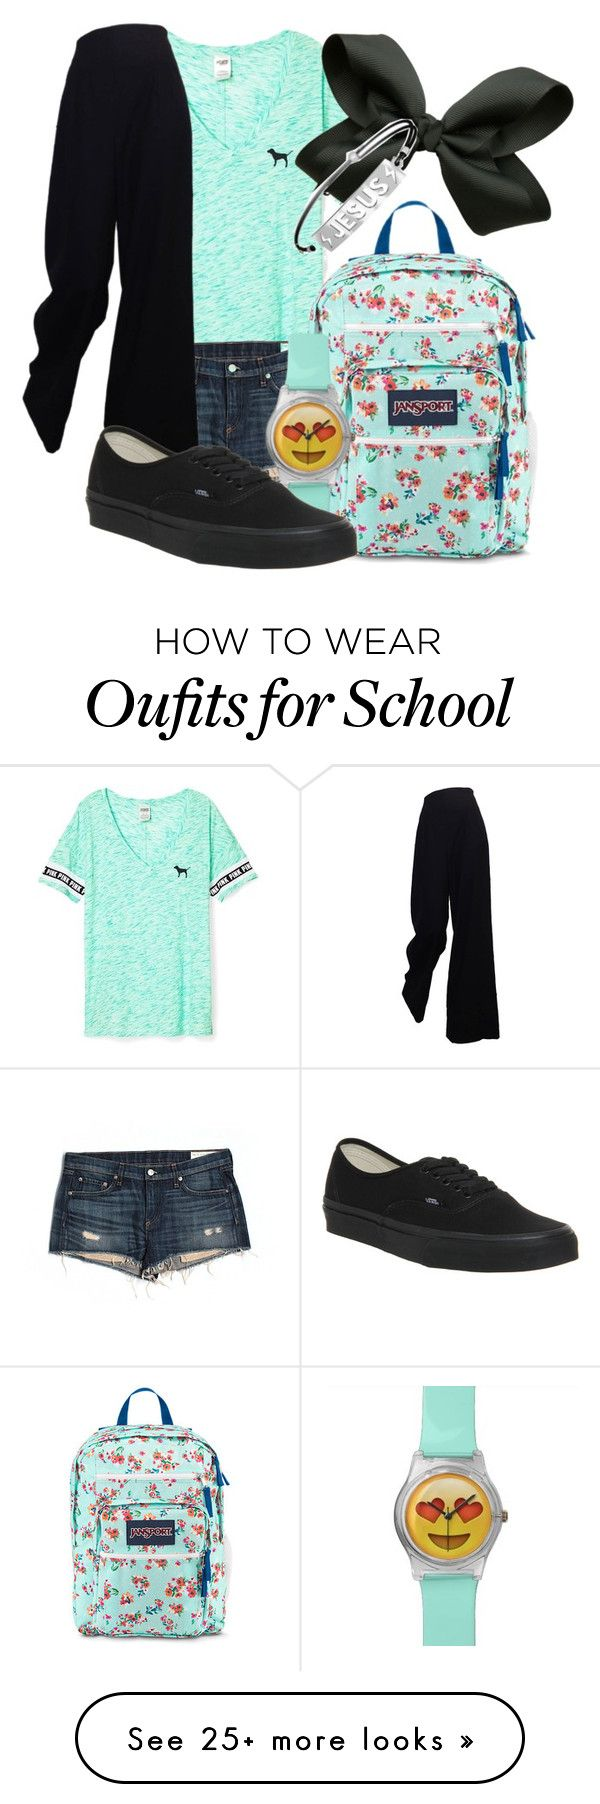 """""""First Day Back At School"""" by curlyhead03 on Polyvore featuring Victoria's Secret, rag & bone/JEAN, JanSport, The Row and Vans"""